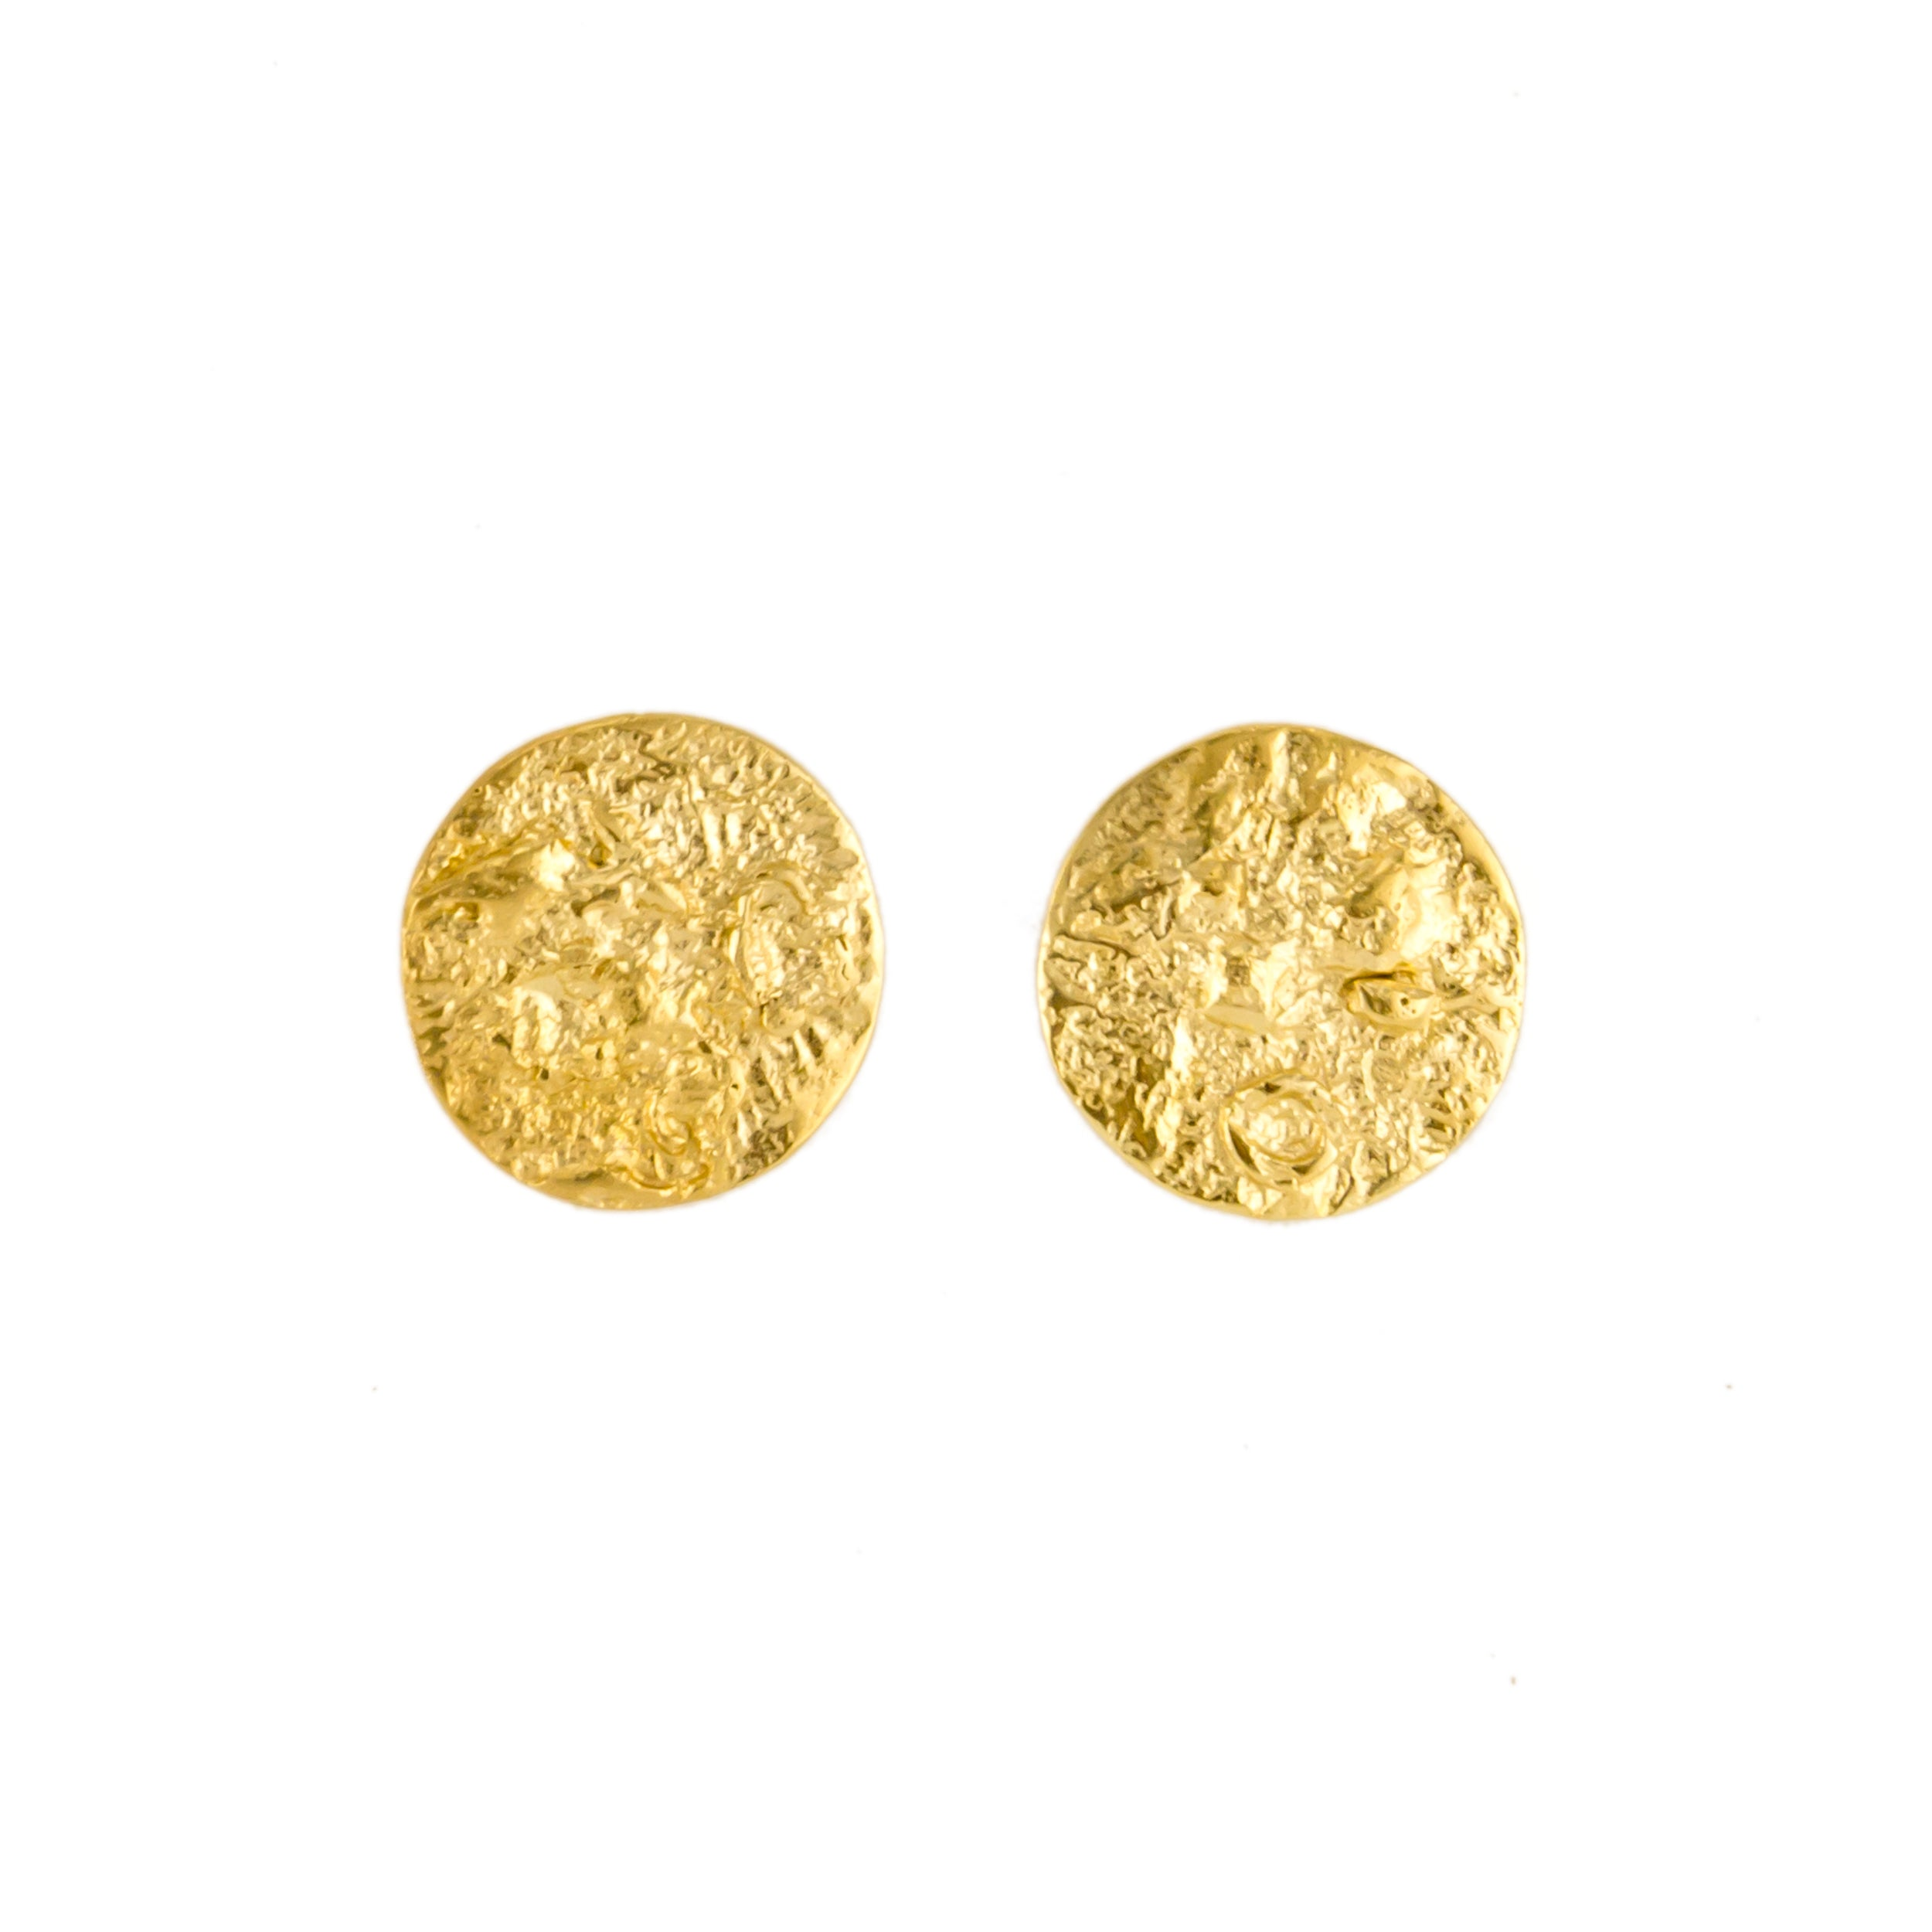 o museum moon products georgia store apparel jewelry keeffe applique half accessories earrings